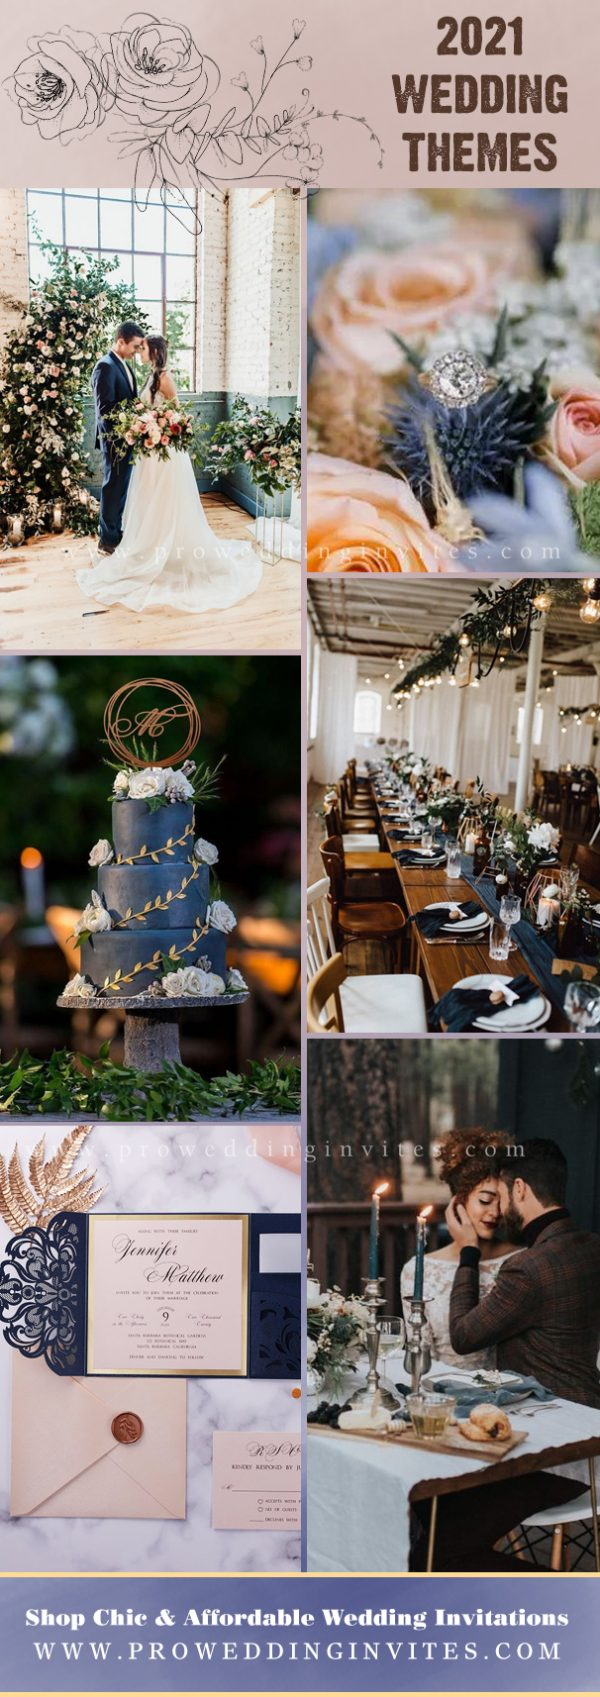 copper wedding themes